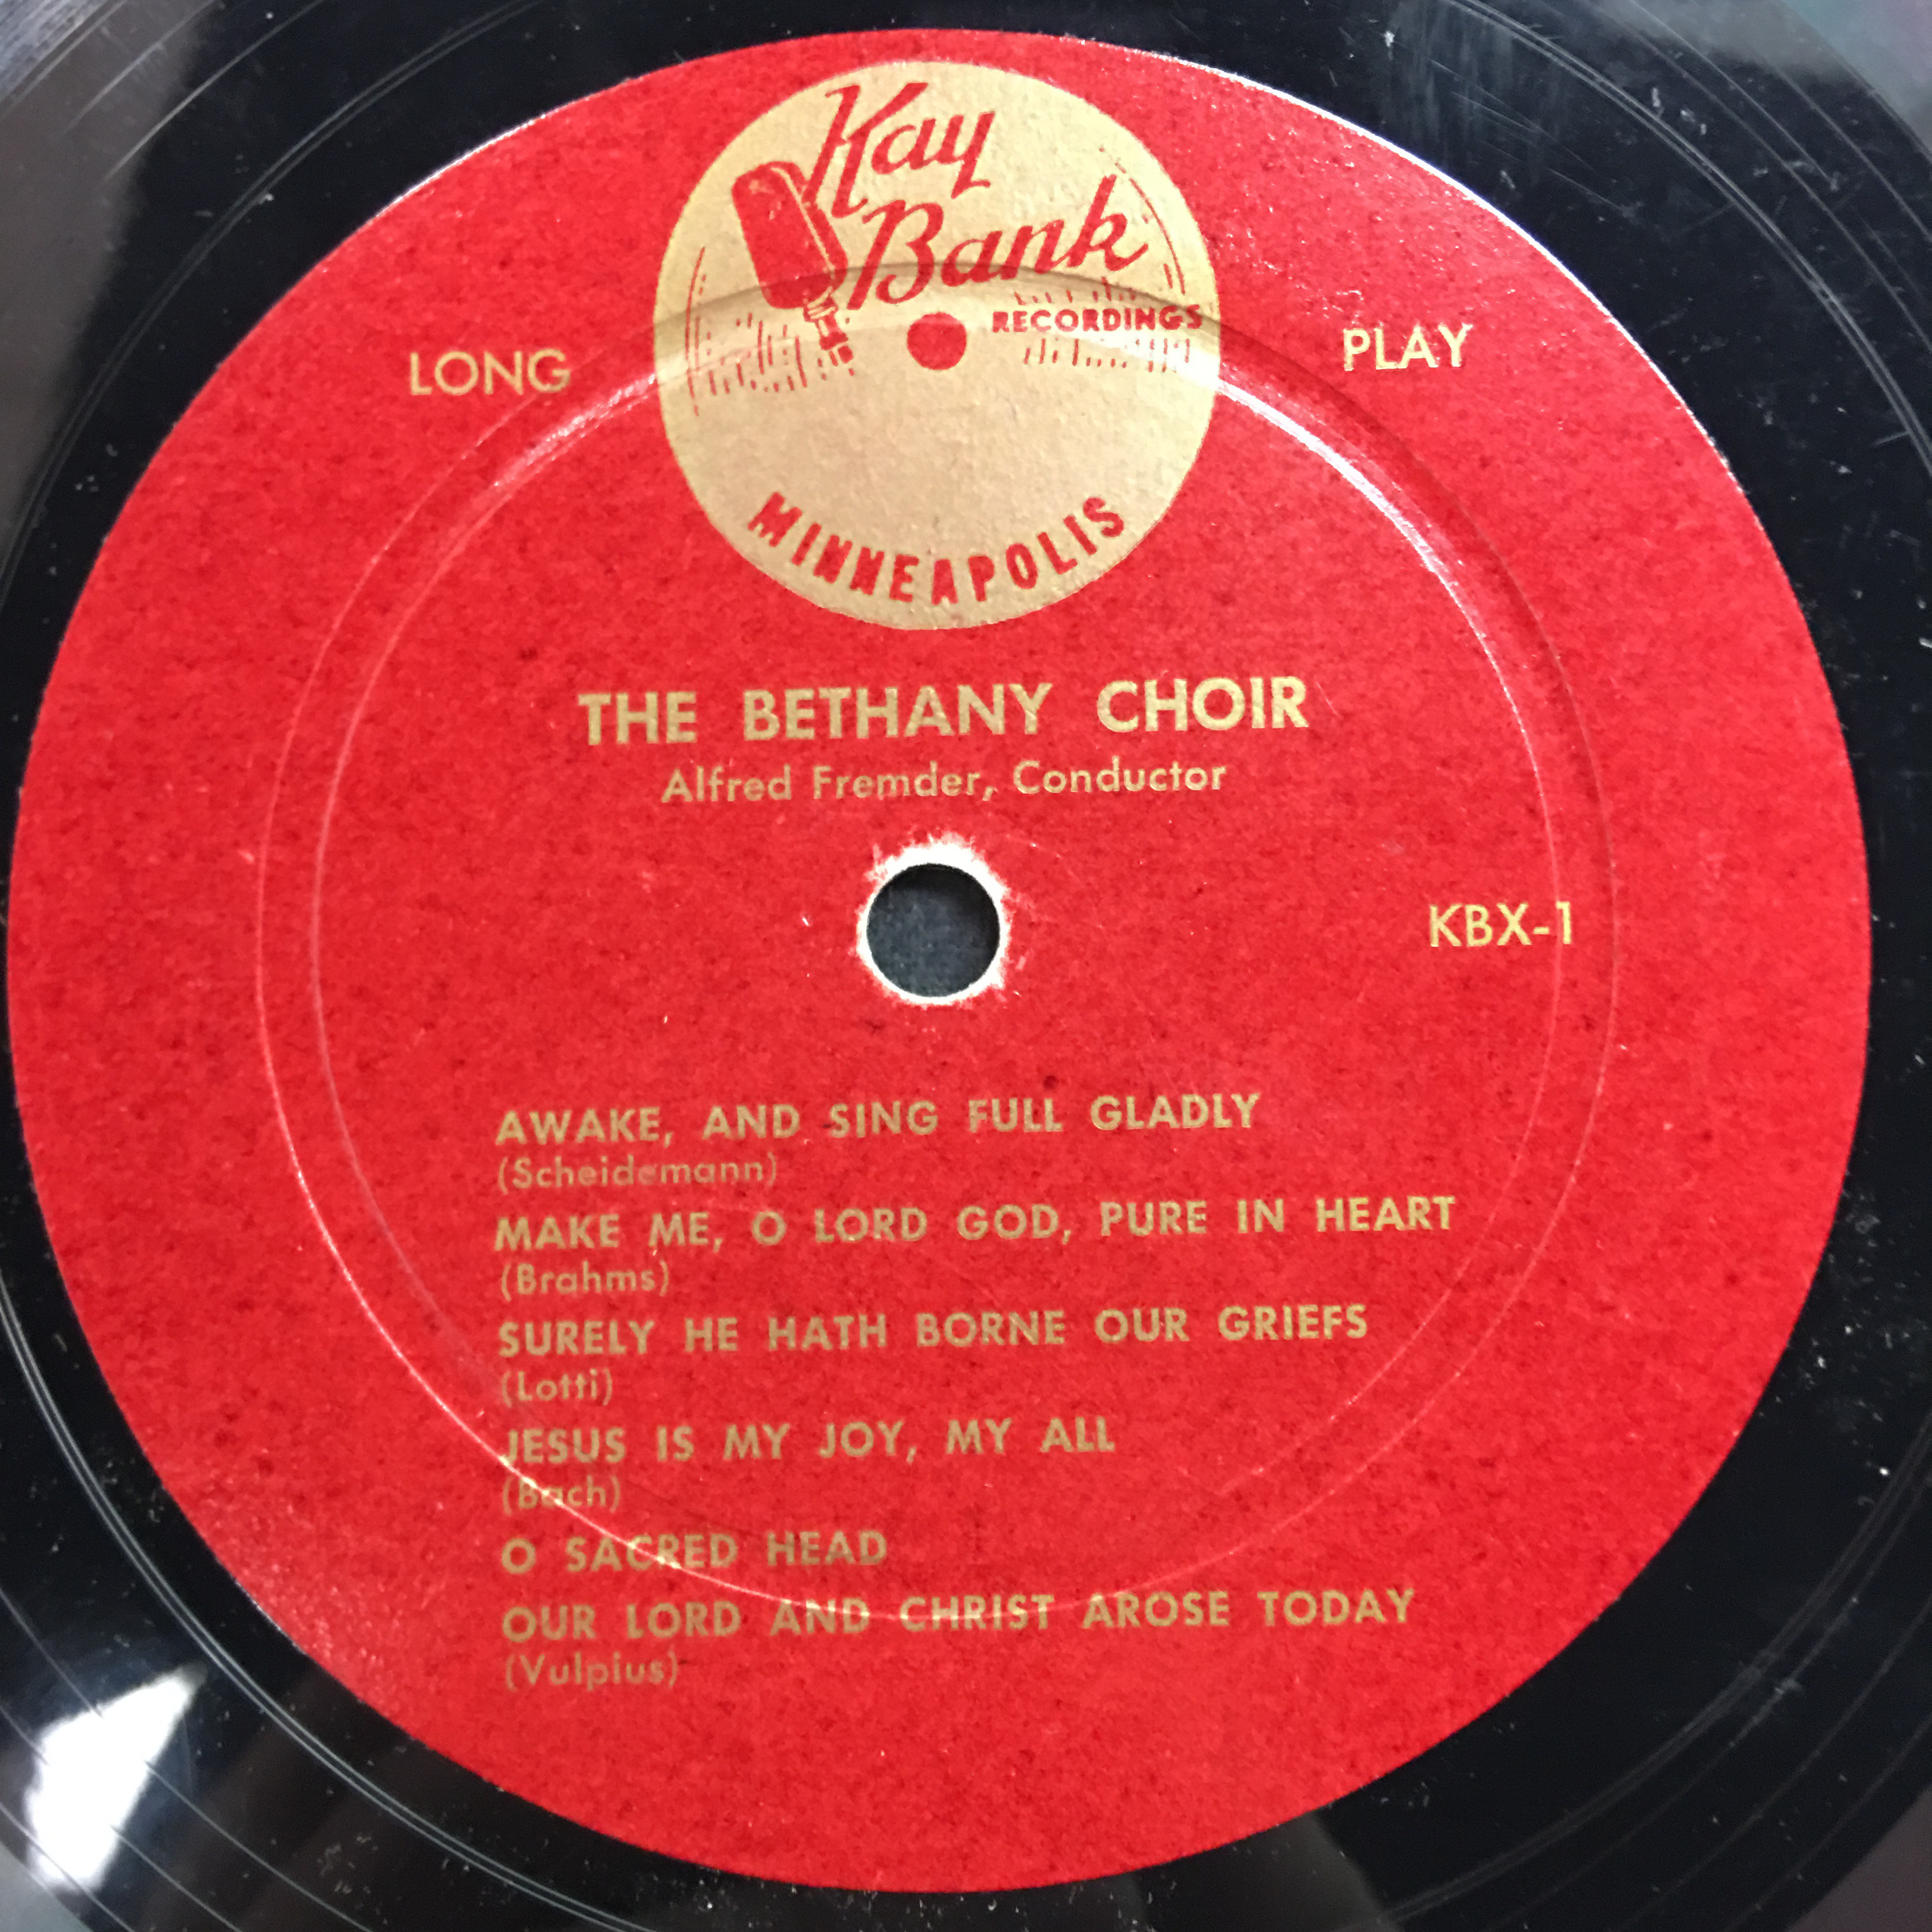 The Bethany Choir 1950: Singing Praises to God Vinyl 1 Side 1